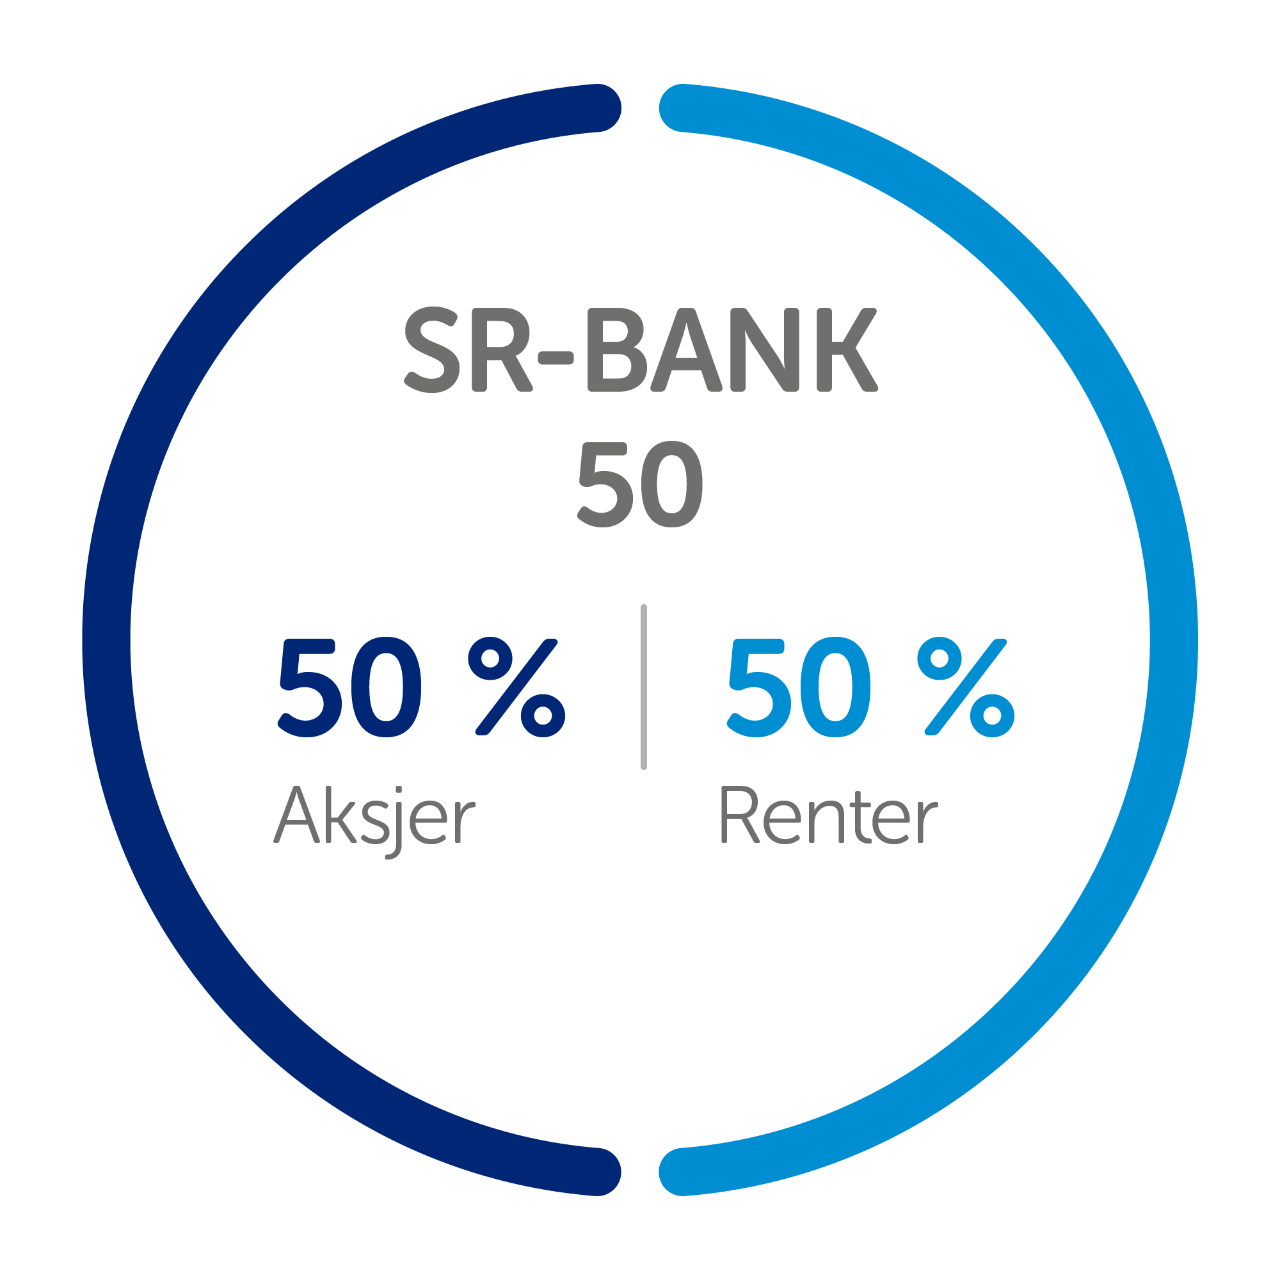 kakediagram fond sr-bank 50